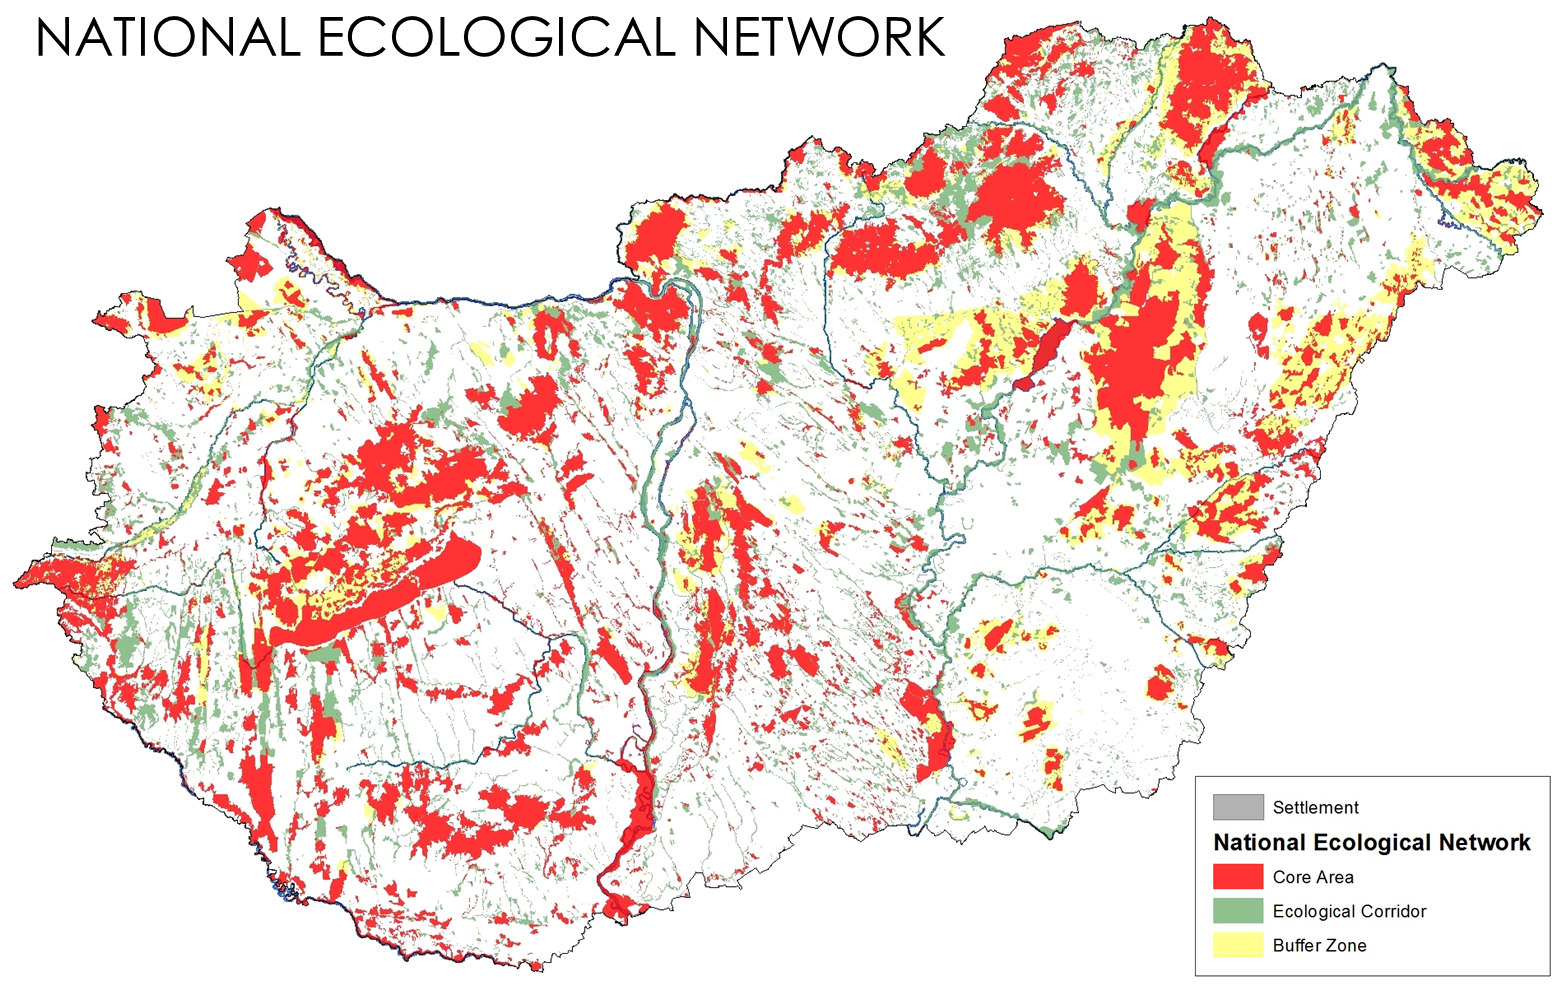 National Ecological Network